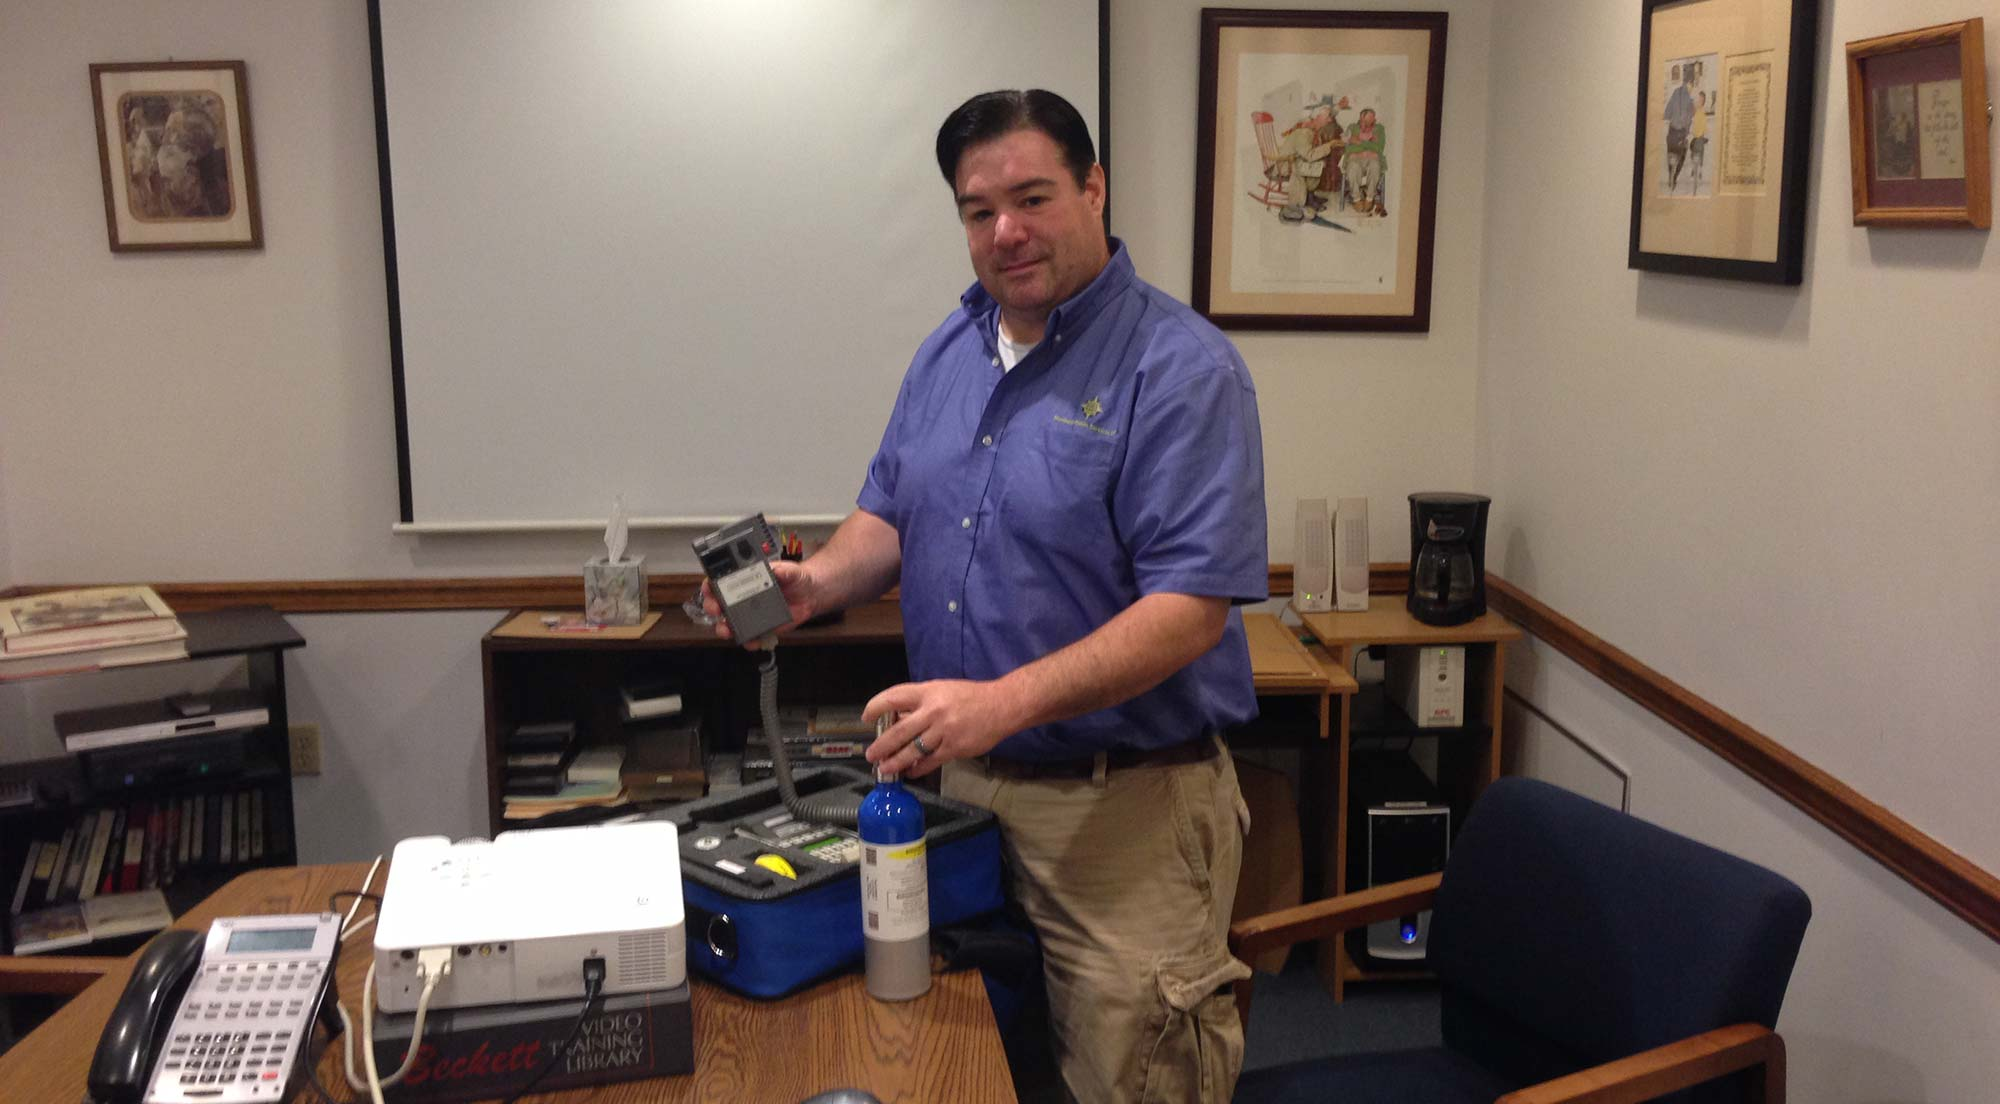 Keith R. Gosselin is a Certified Calibration Technician on the RBT IV